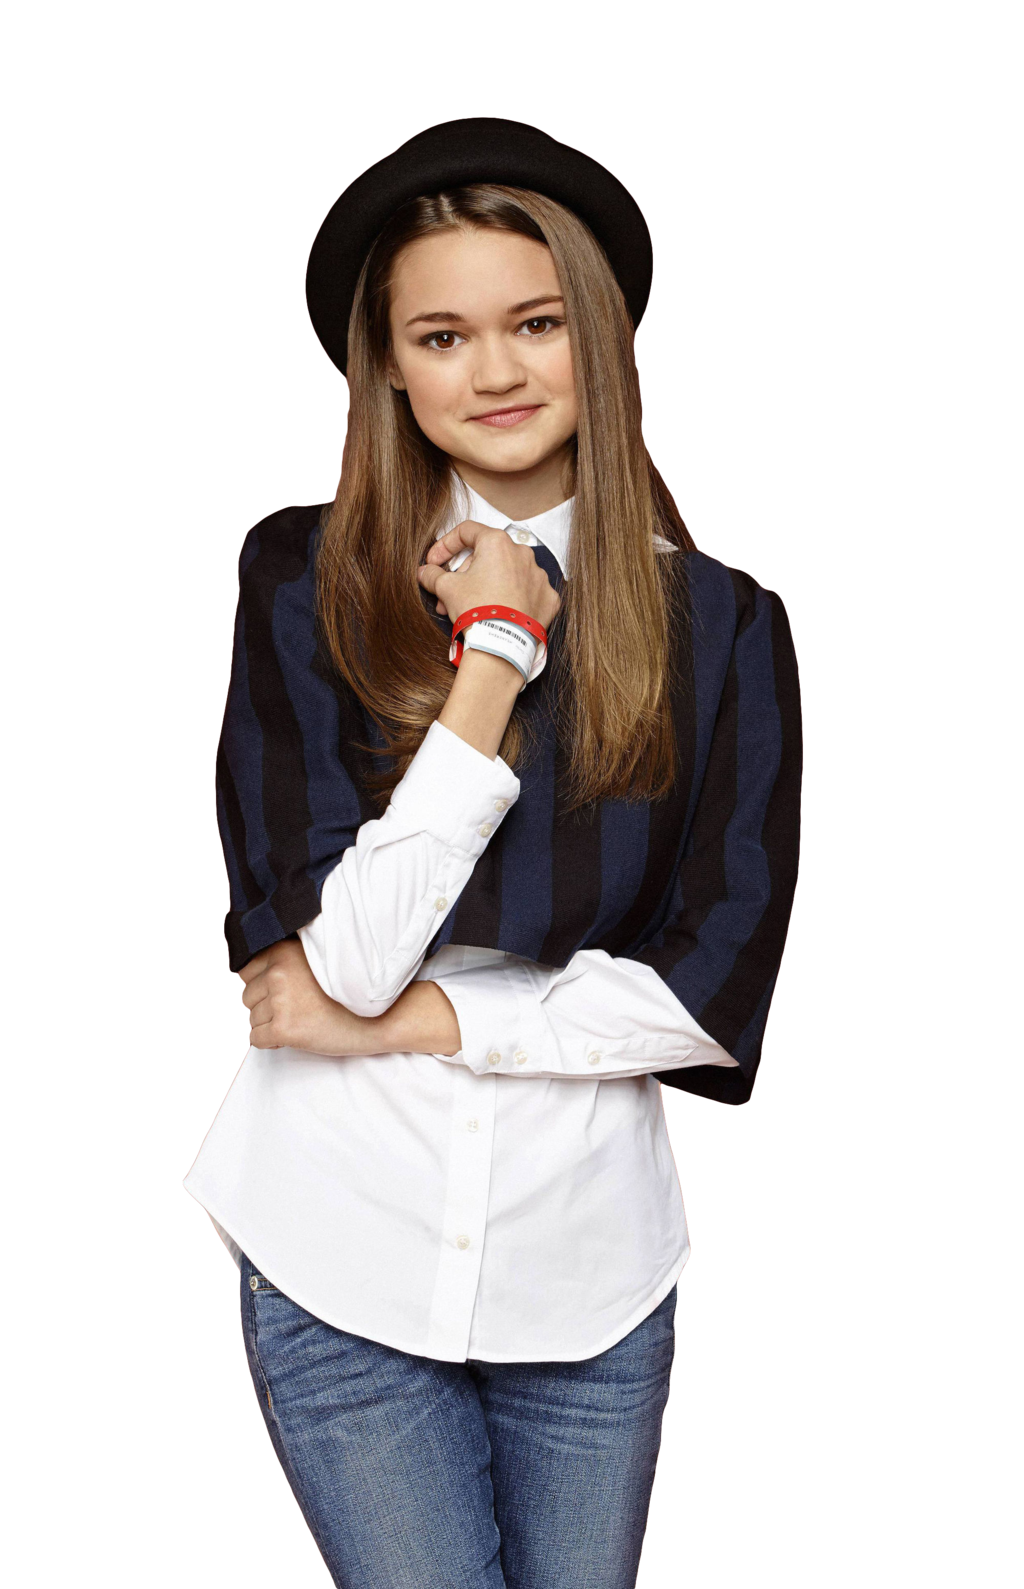 Woman png. Hq girl transparent images